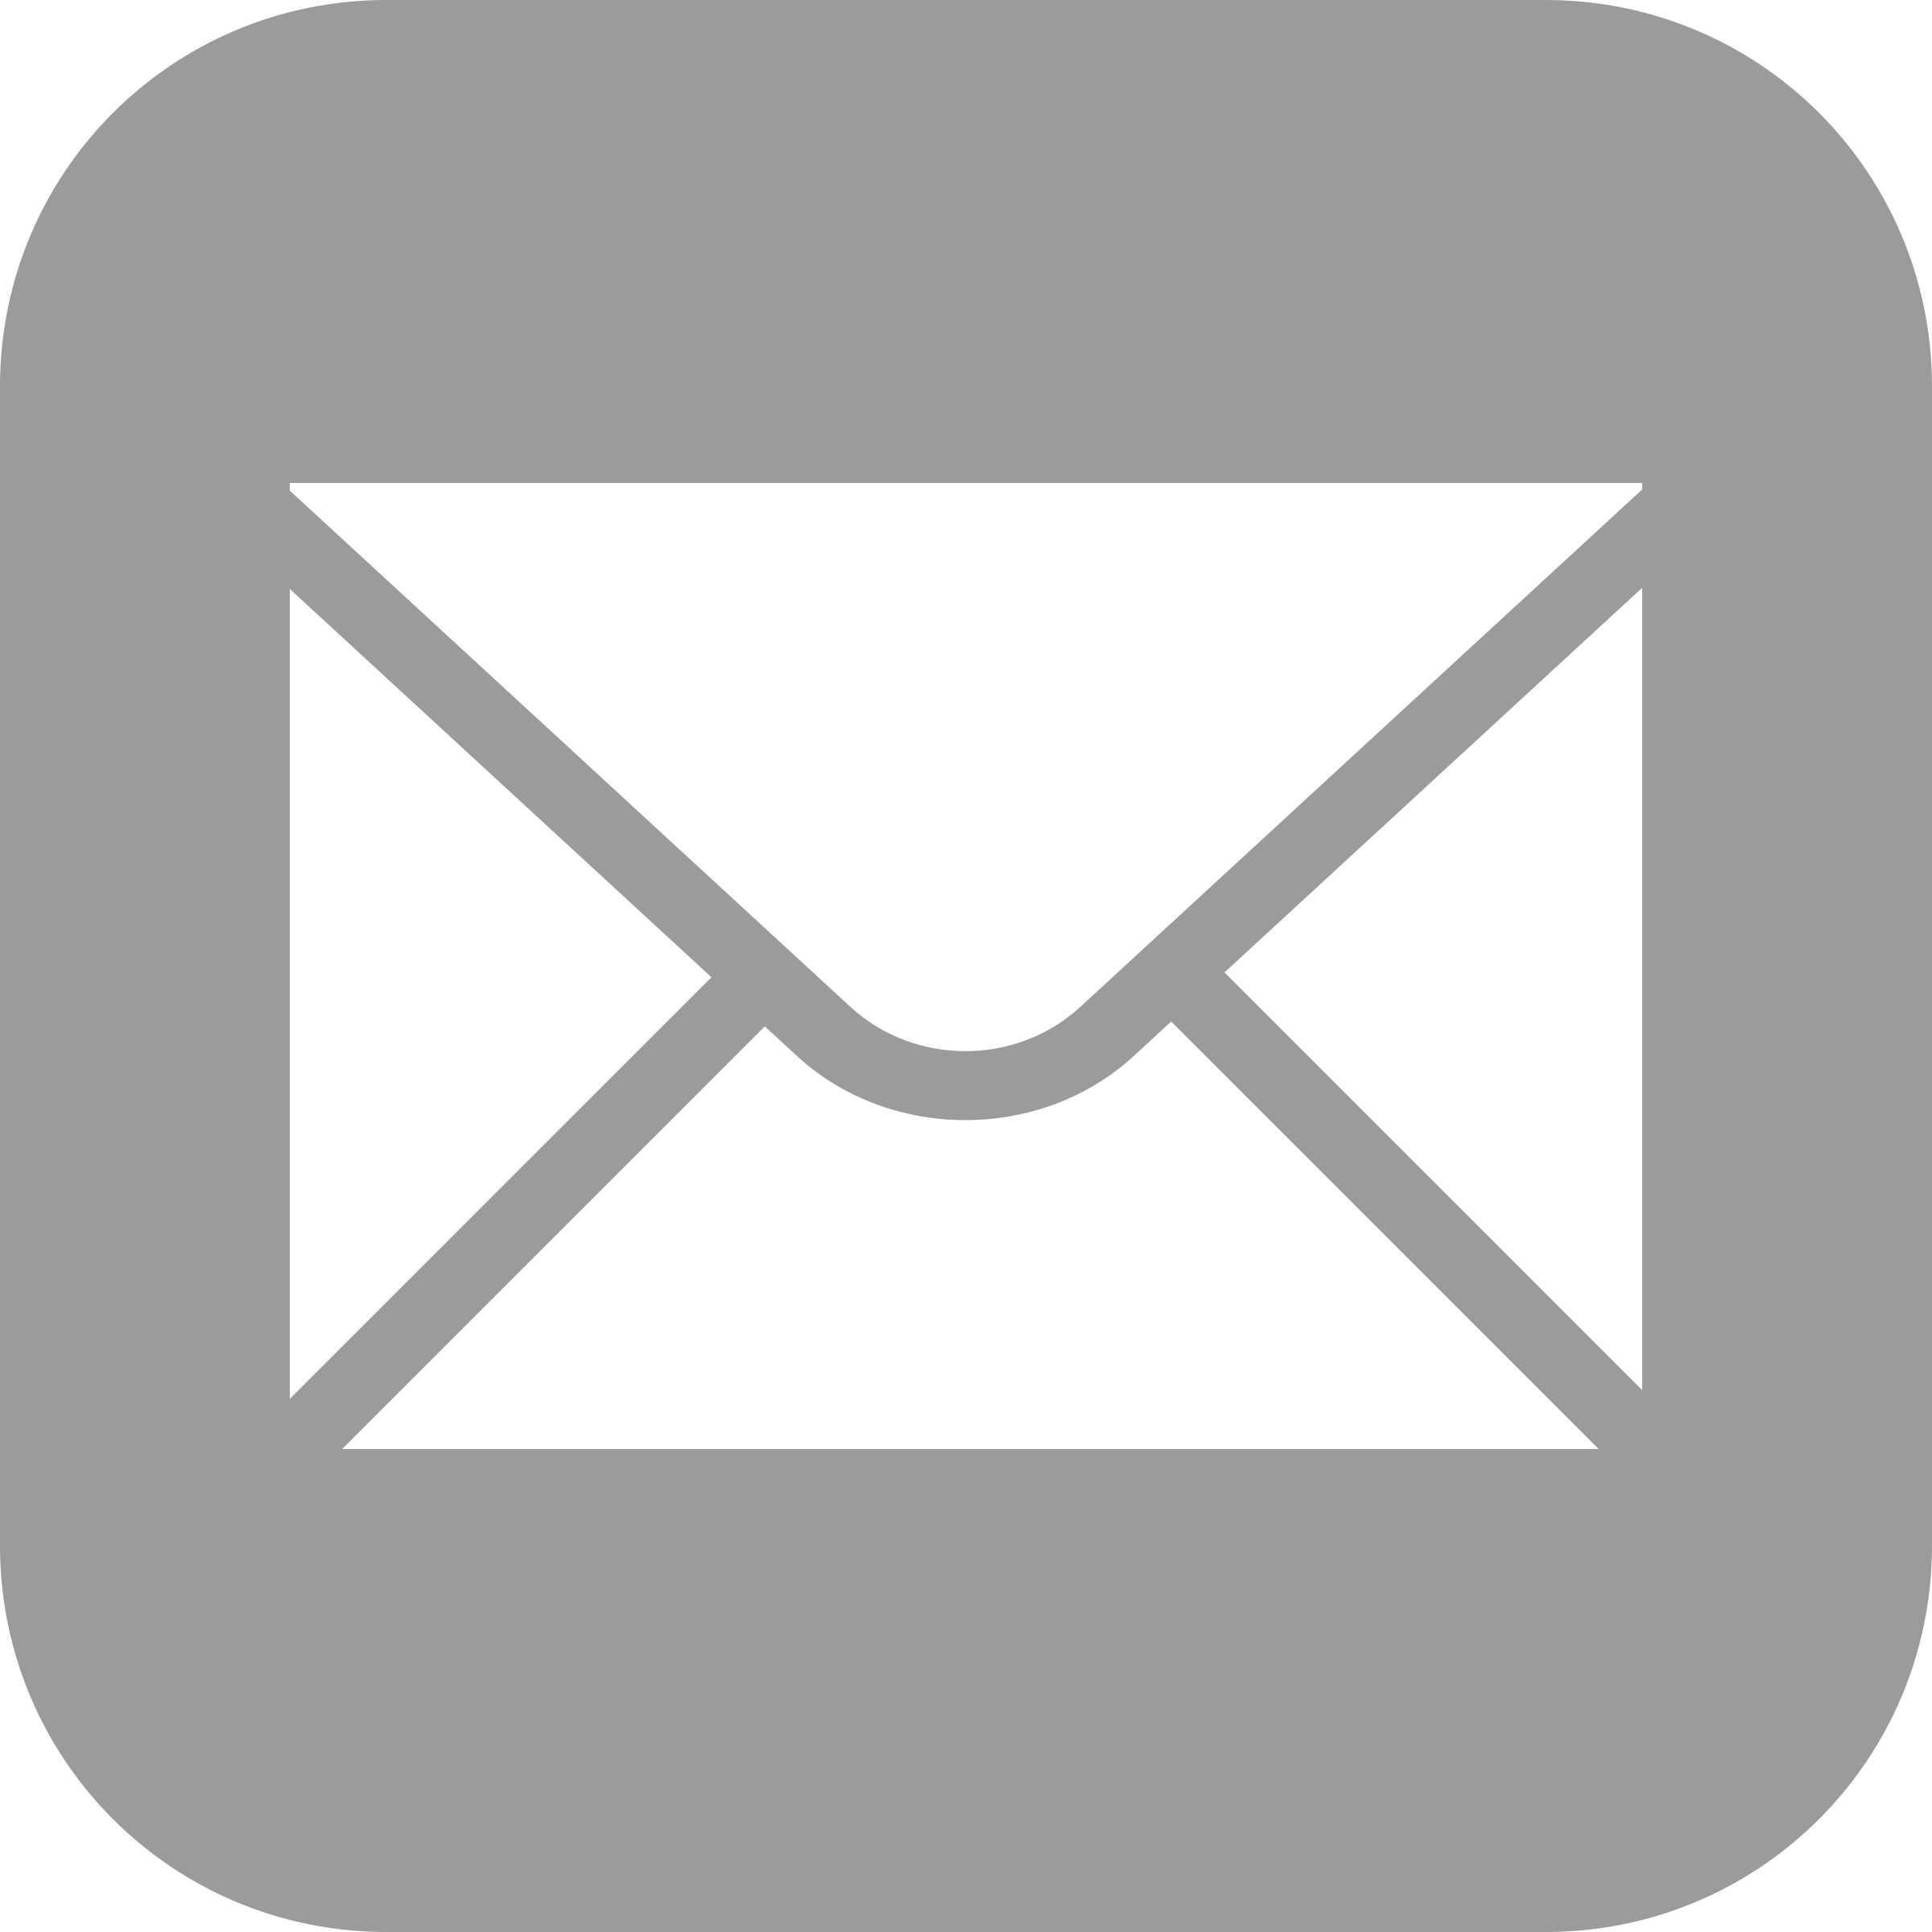 Email png icon. Sharing icons free and